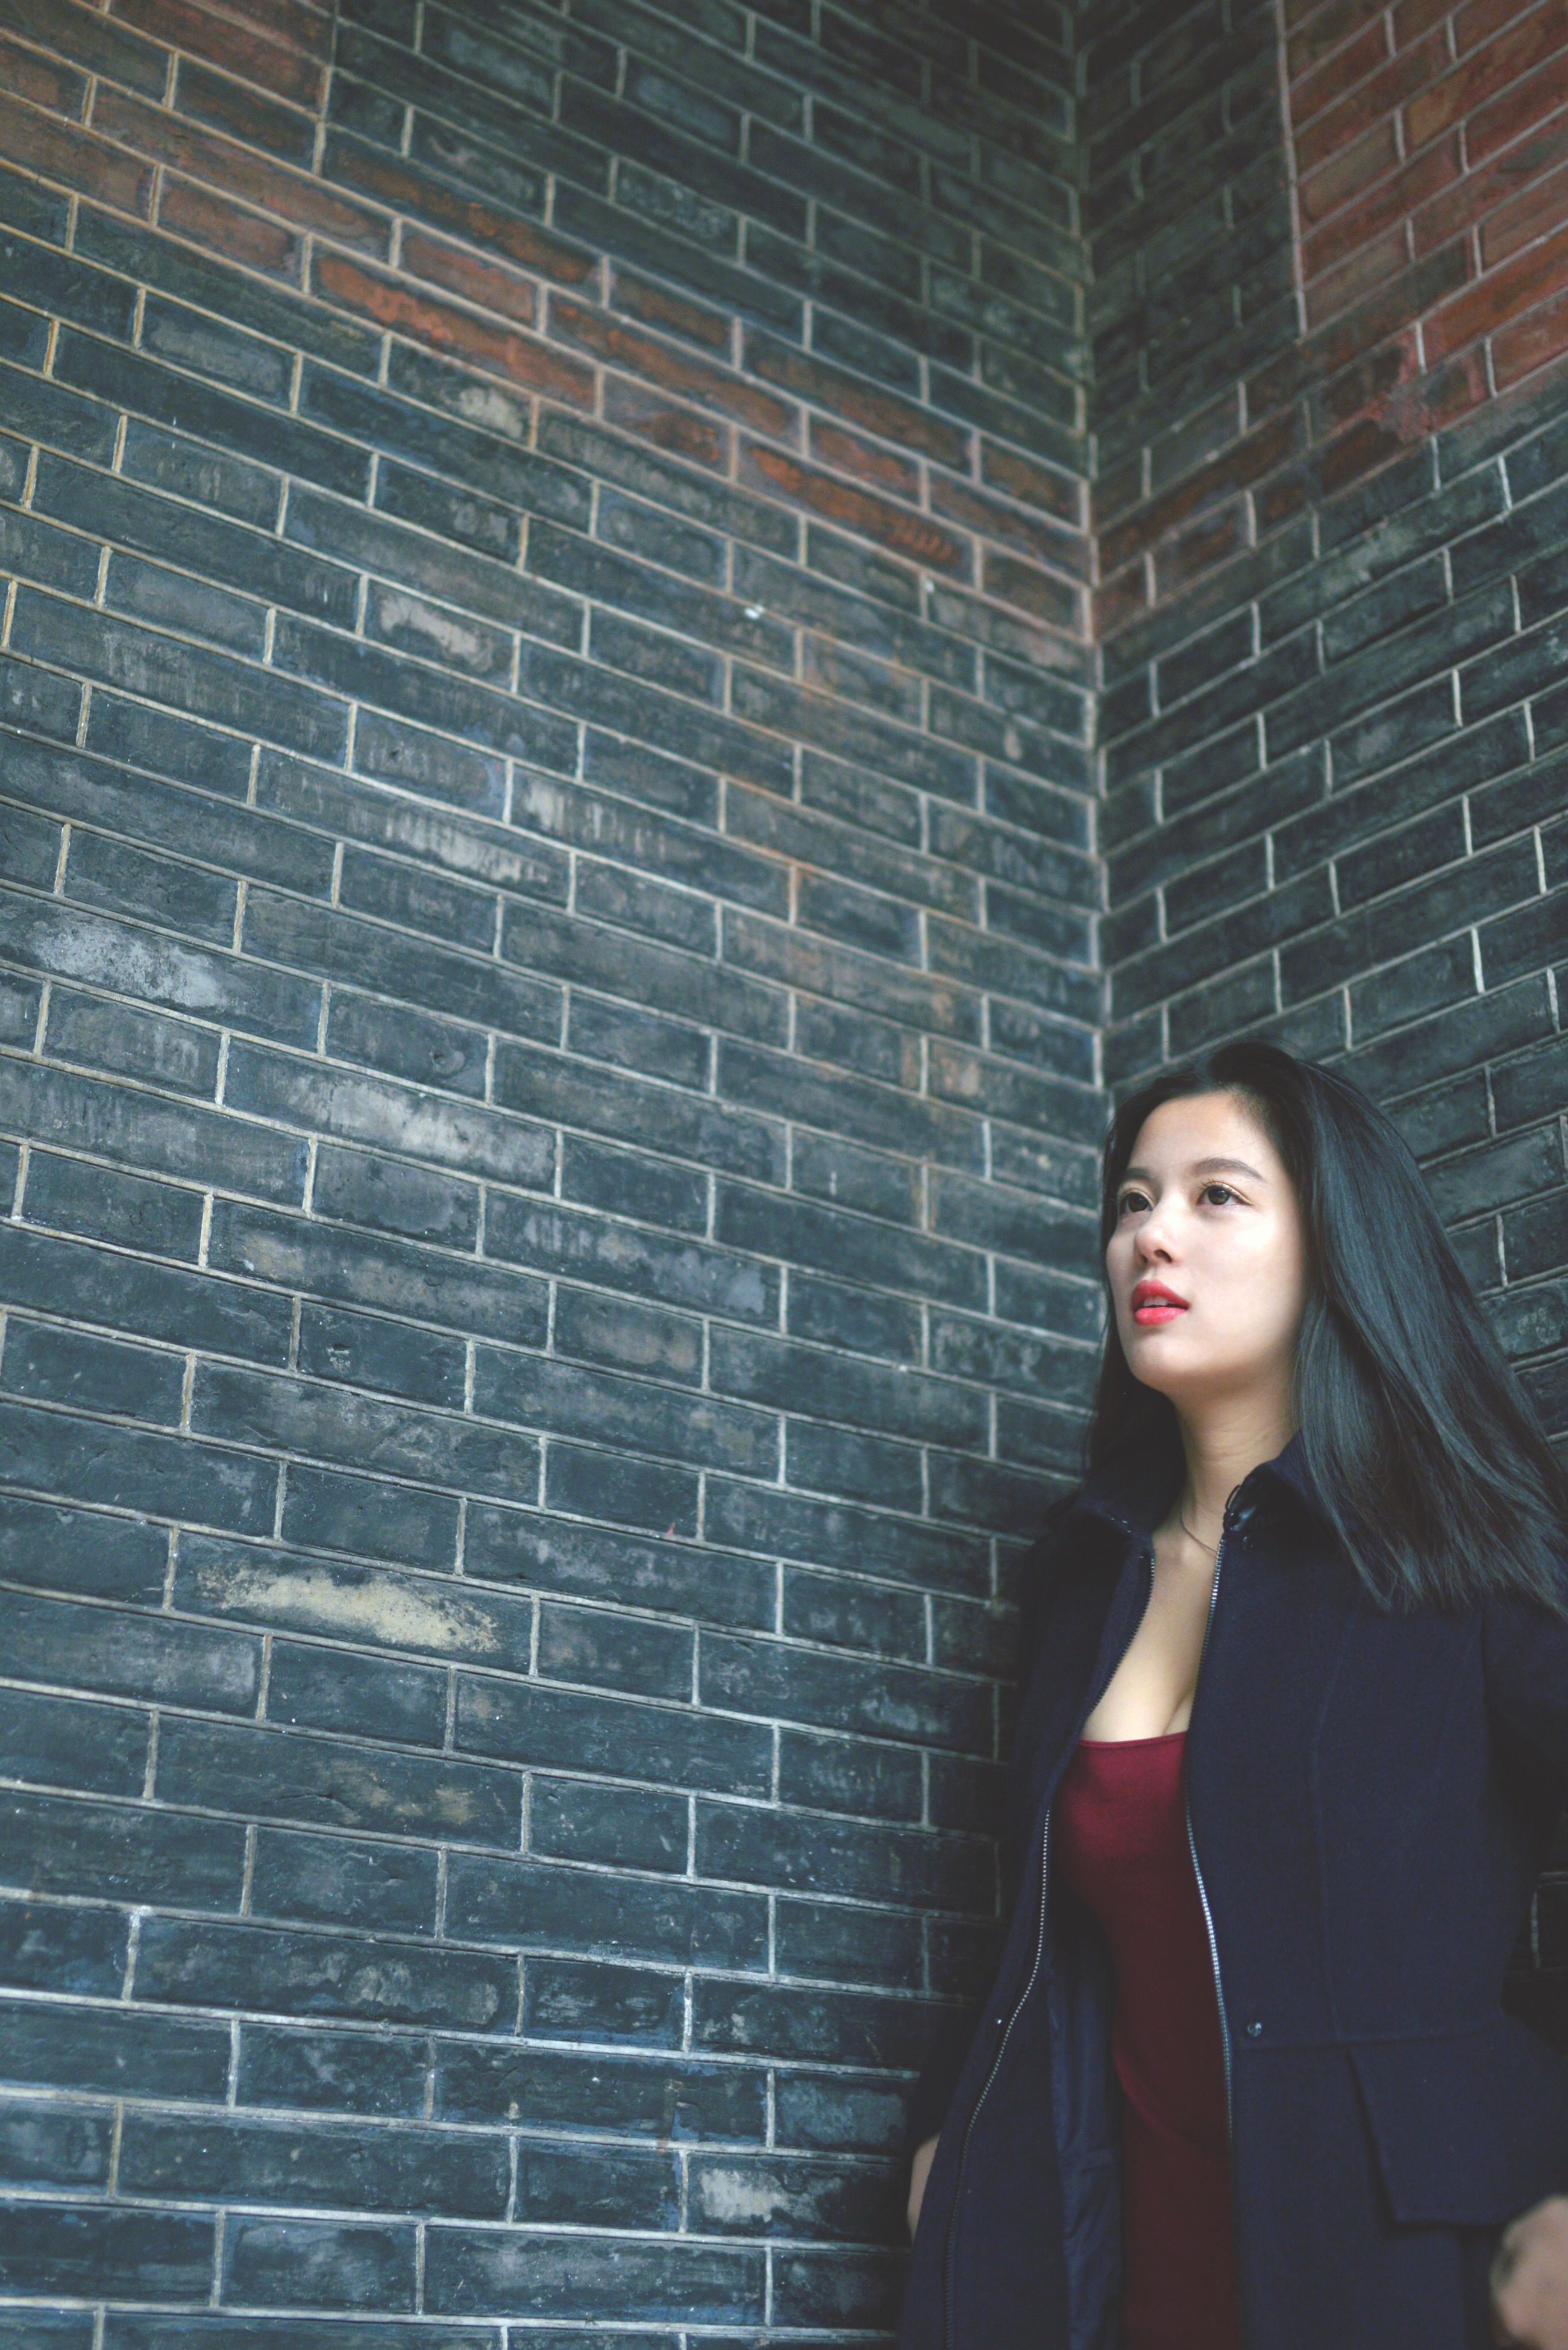 young adult, looking at camera, lifestyles, portrait, front view, person, casual clothing, young women, standing, leisure activity, wall - building feature, brick wall, architecture, built structure, smiling, wall, building exterior